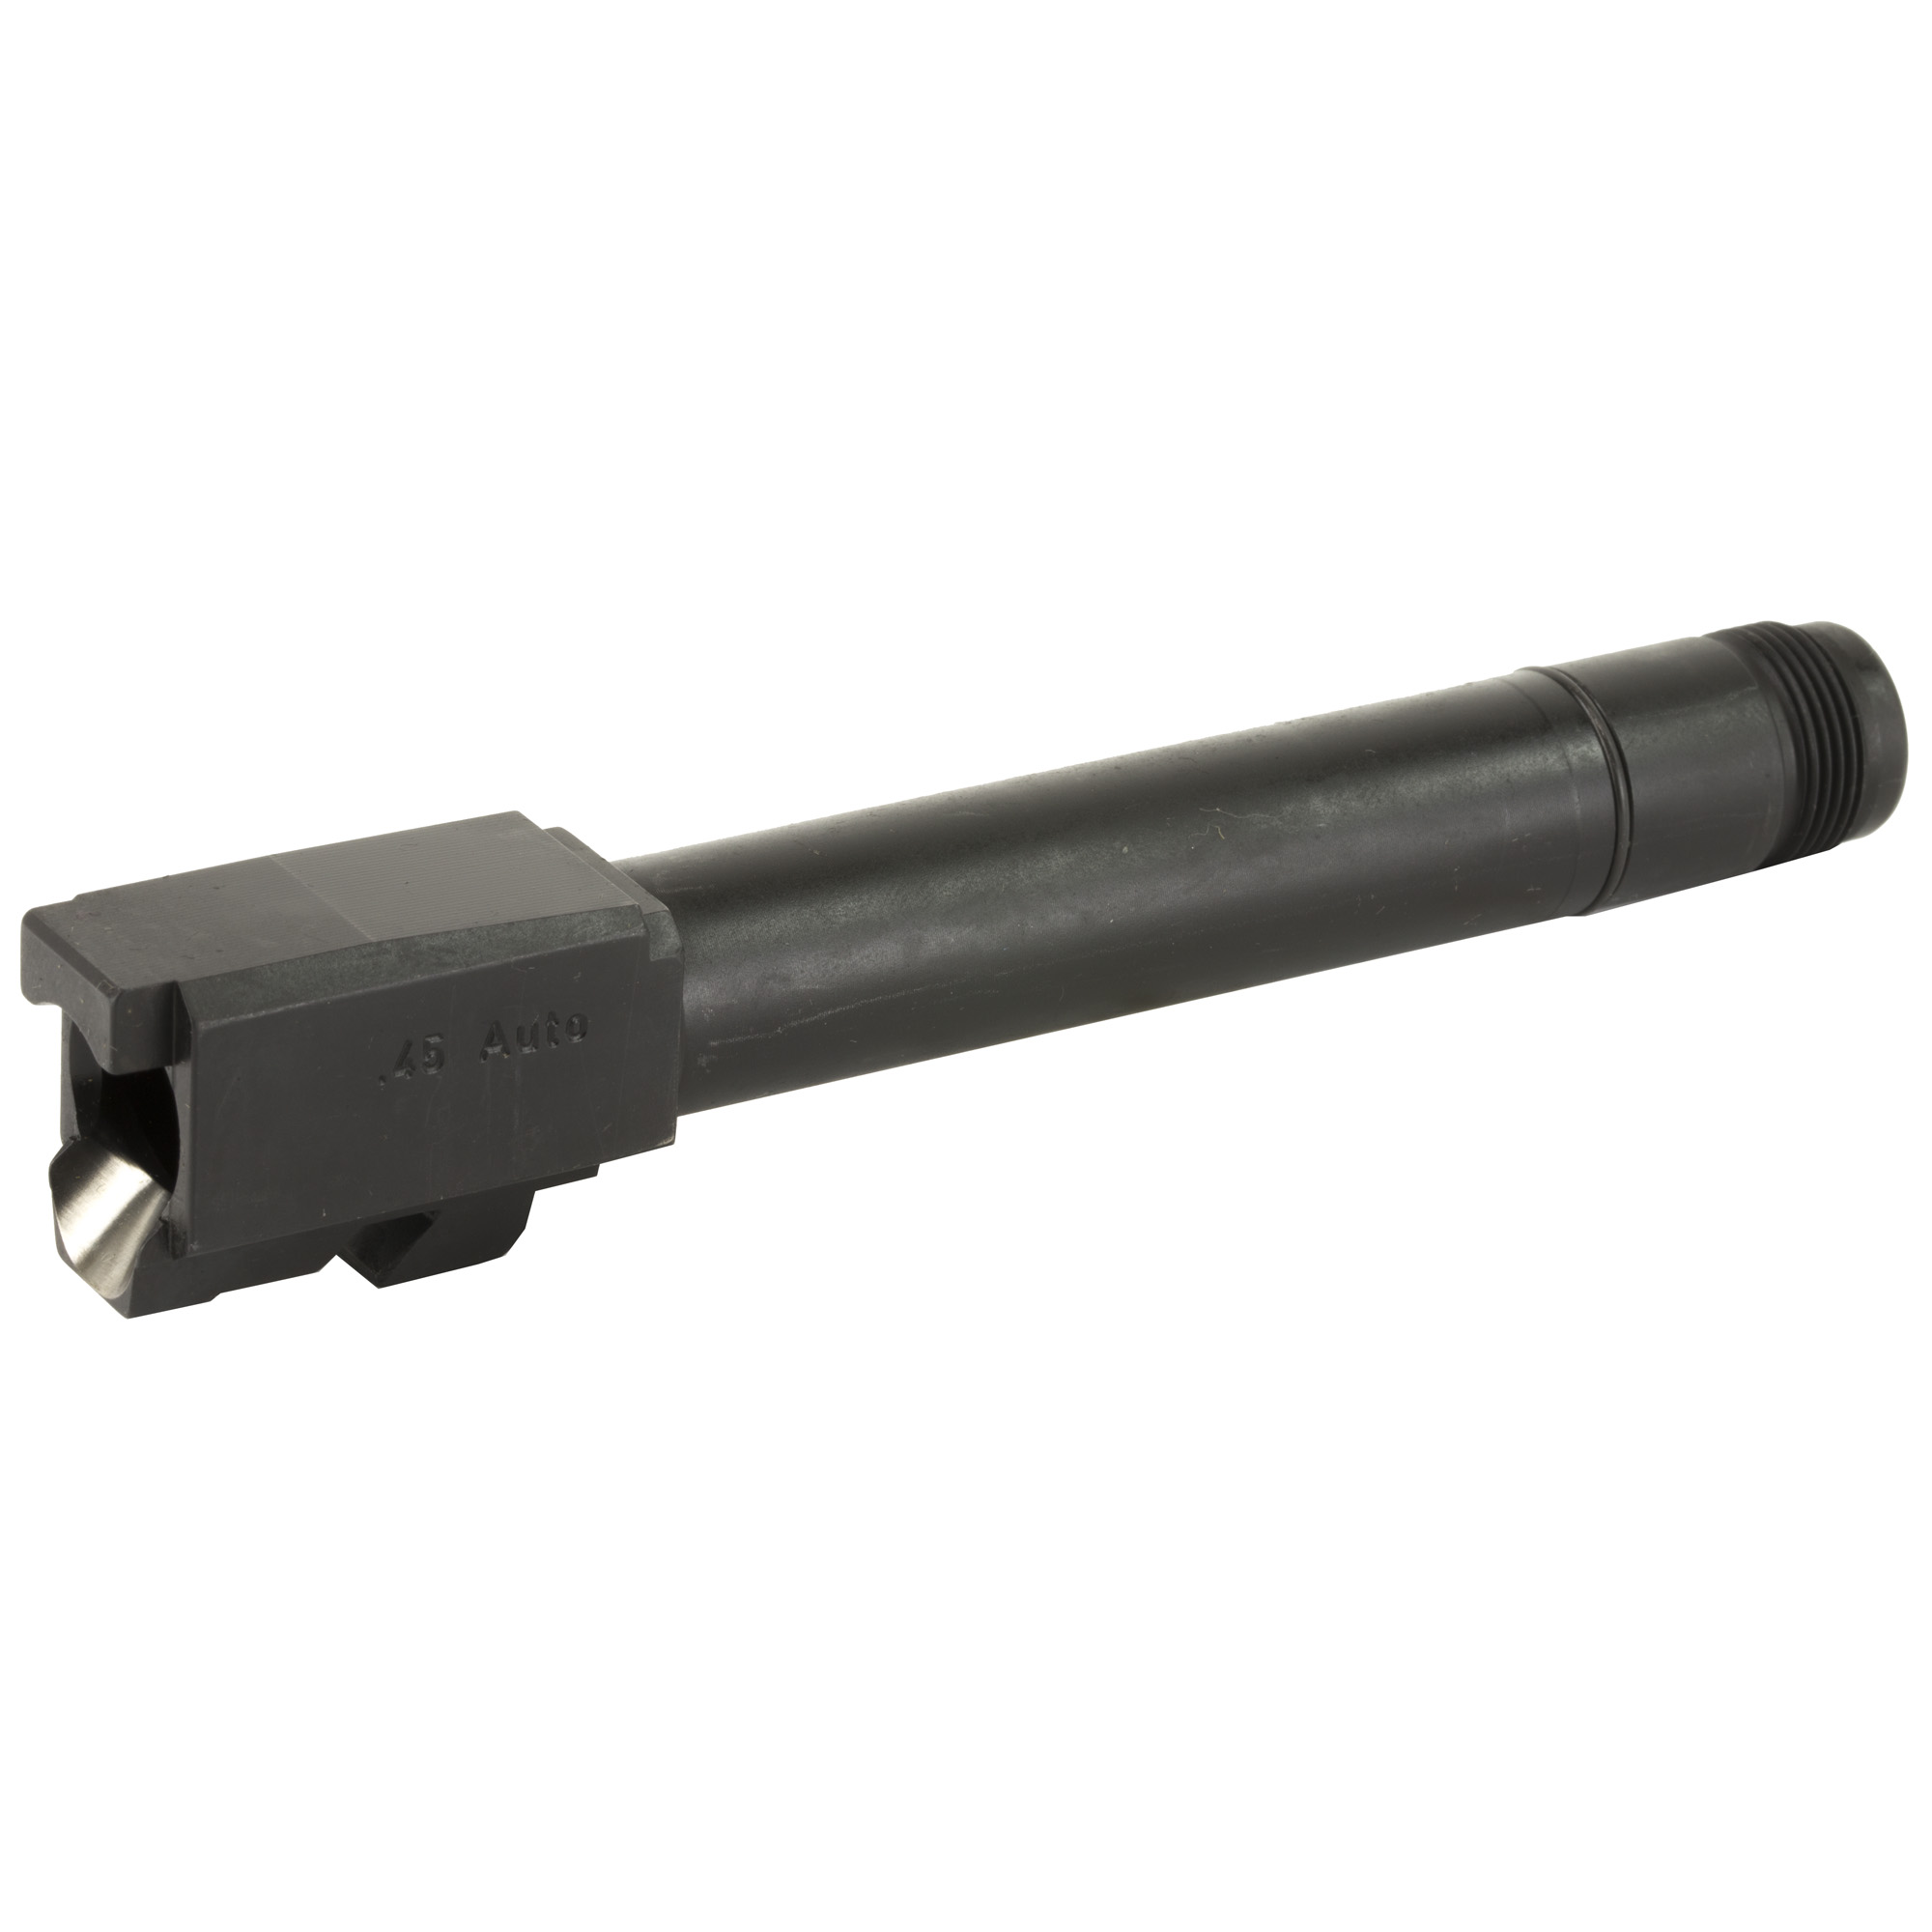 """Spare barrel for USP45 Tactical or upgrade USP45 to accept threaded suppressors or other muzzle attachments. Drop in part for all USP .45 full size"""" USP 45 tactical pistols (EXCEPT USP45 EXPERT). WILL NOT FIT THE COMPACT MODELS OR THE NEWER HK45 PISTOLWILL NOT FIT THE COMPACT MODELS OR THE NEWER HK45 PISTOL."""